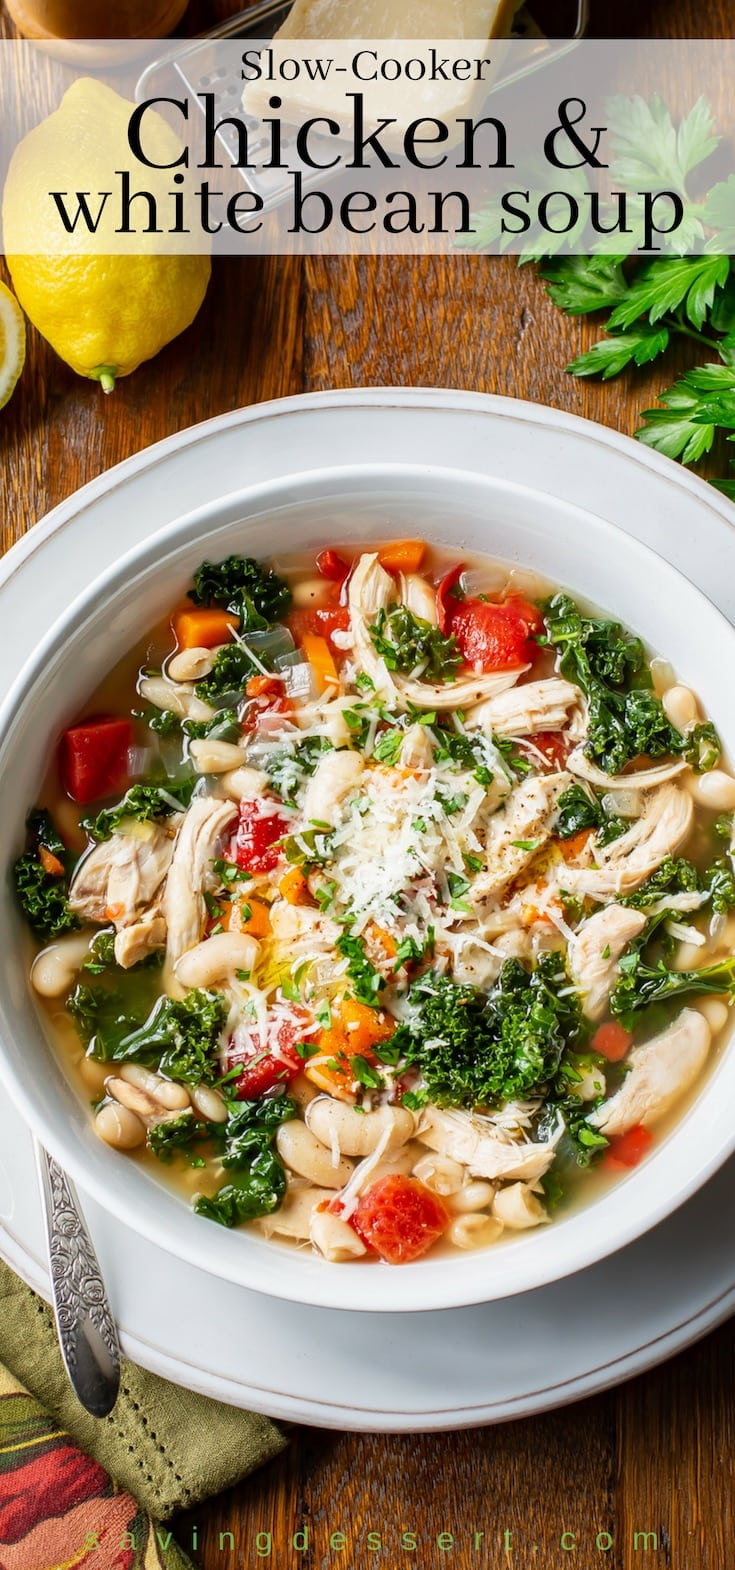 A bowl of healthy Chicken and White Bean Soup with kale, tomatoes and carrots